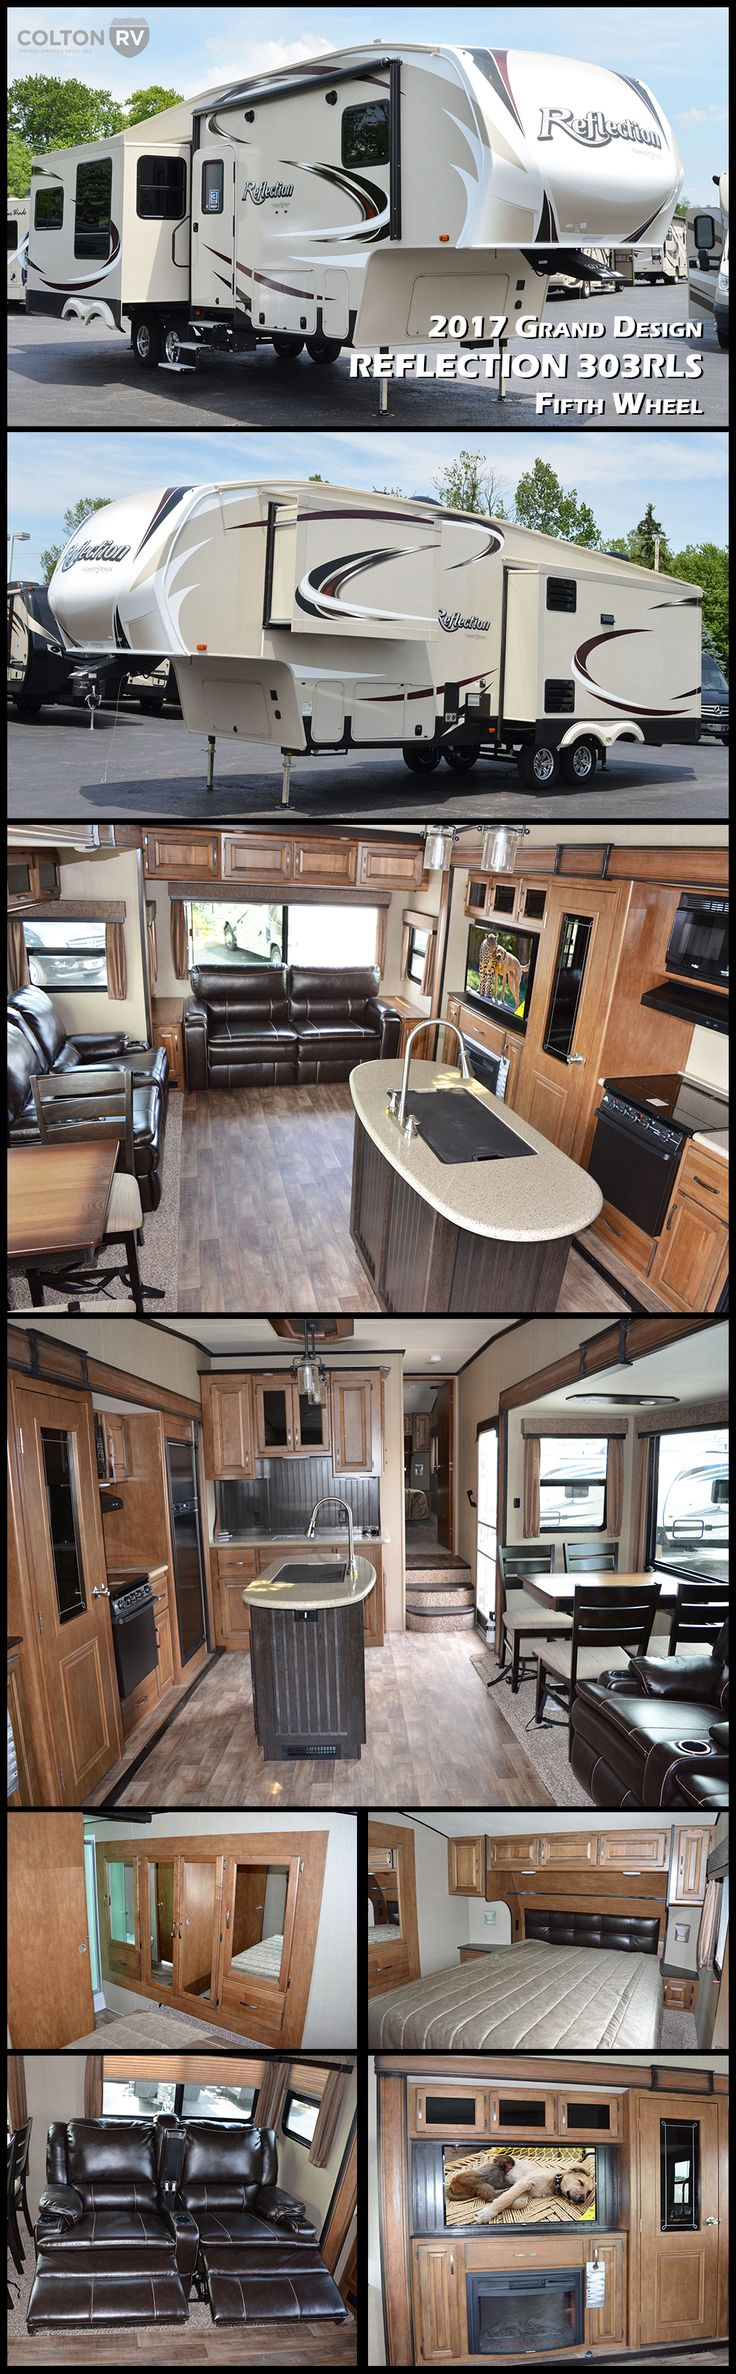 This GRAND DESIGN REFLECTION 303RLS mid-sized fifth wheel is the perfect weekend camper featuring triple slide outs and a rear living area, plus a kitchen island. Once you step inside you will immediately be impressed with the spaciousness of the living room and kitchen area. With two opposing slide outs the open concept feel of home really shows. Tucked in the rear of the fifth wheel you will find a tri-fold sofa bed that is perfect for relaxing and also provides additional sleeping when…